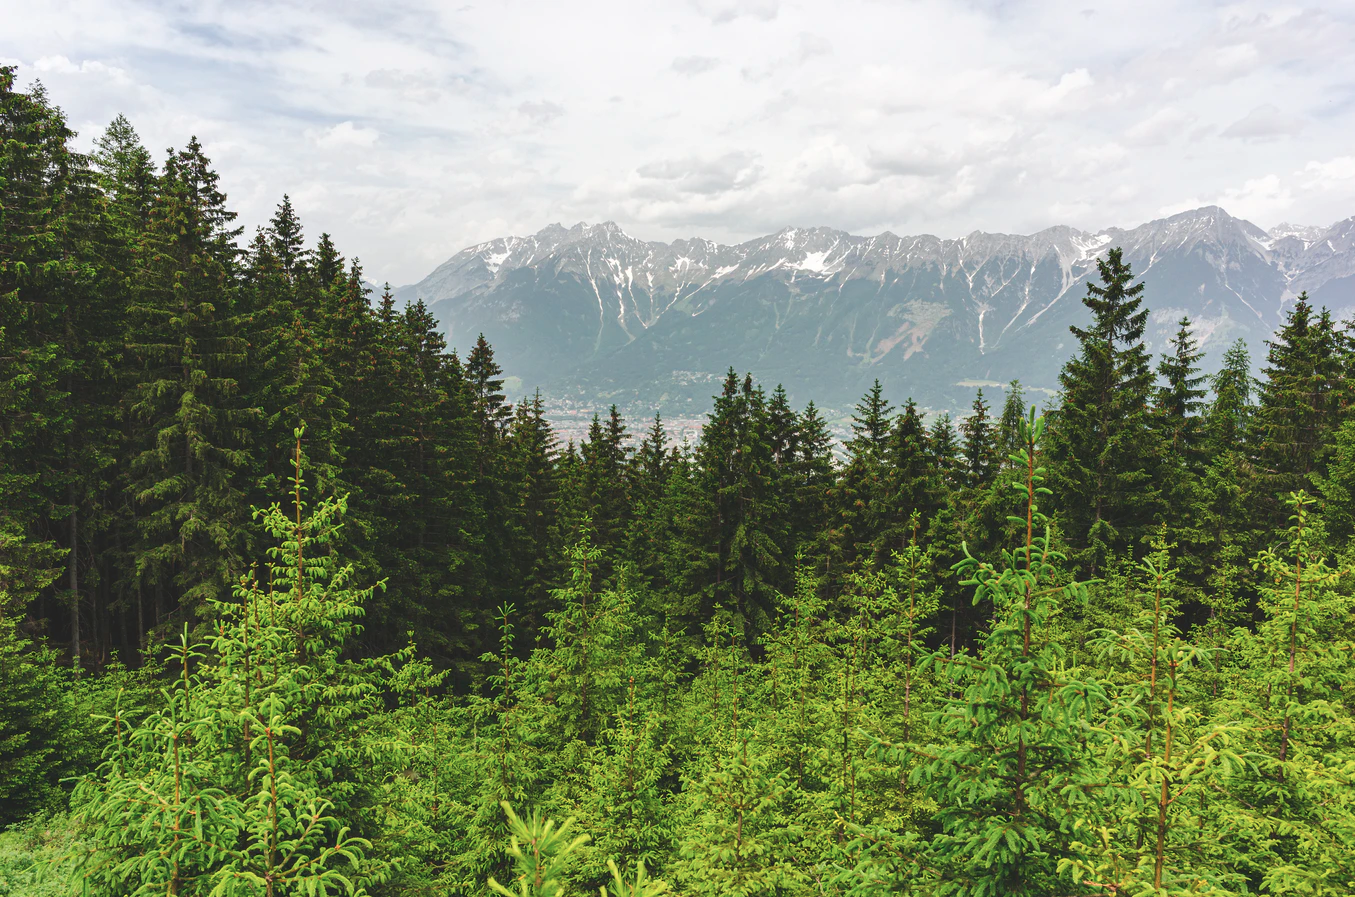 A beautiful forest. in the background there are mountains, in the foreground there are young trees.